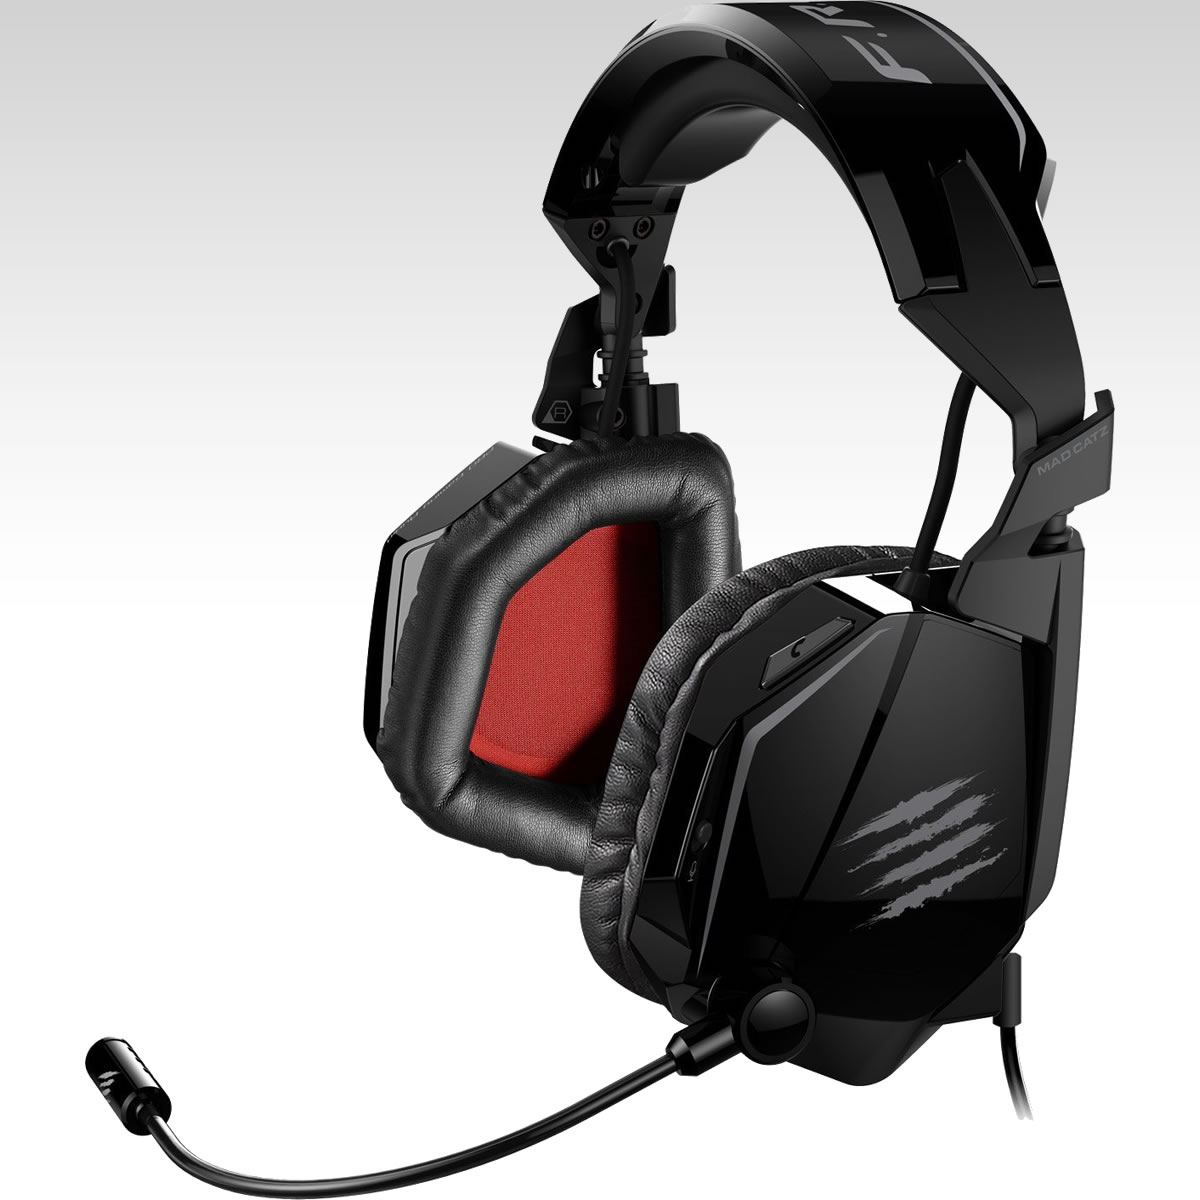 MAD CATZ FREQ TE Tournament Edition STEREO GAMING HEADSET - GLOSS BLACK (PC, MAC, MOBILE)